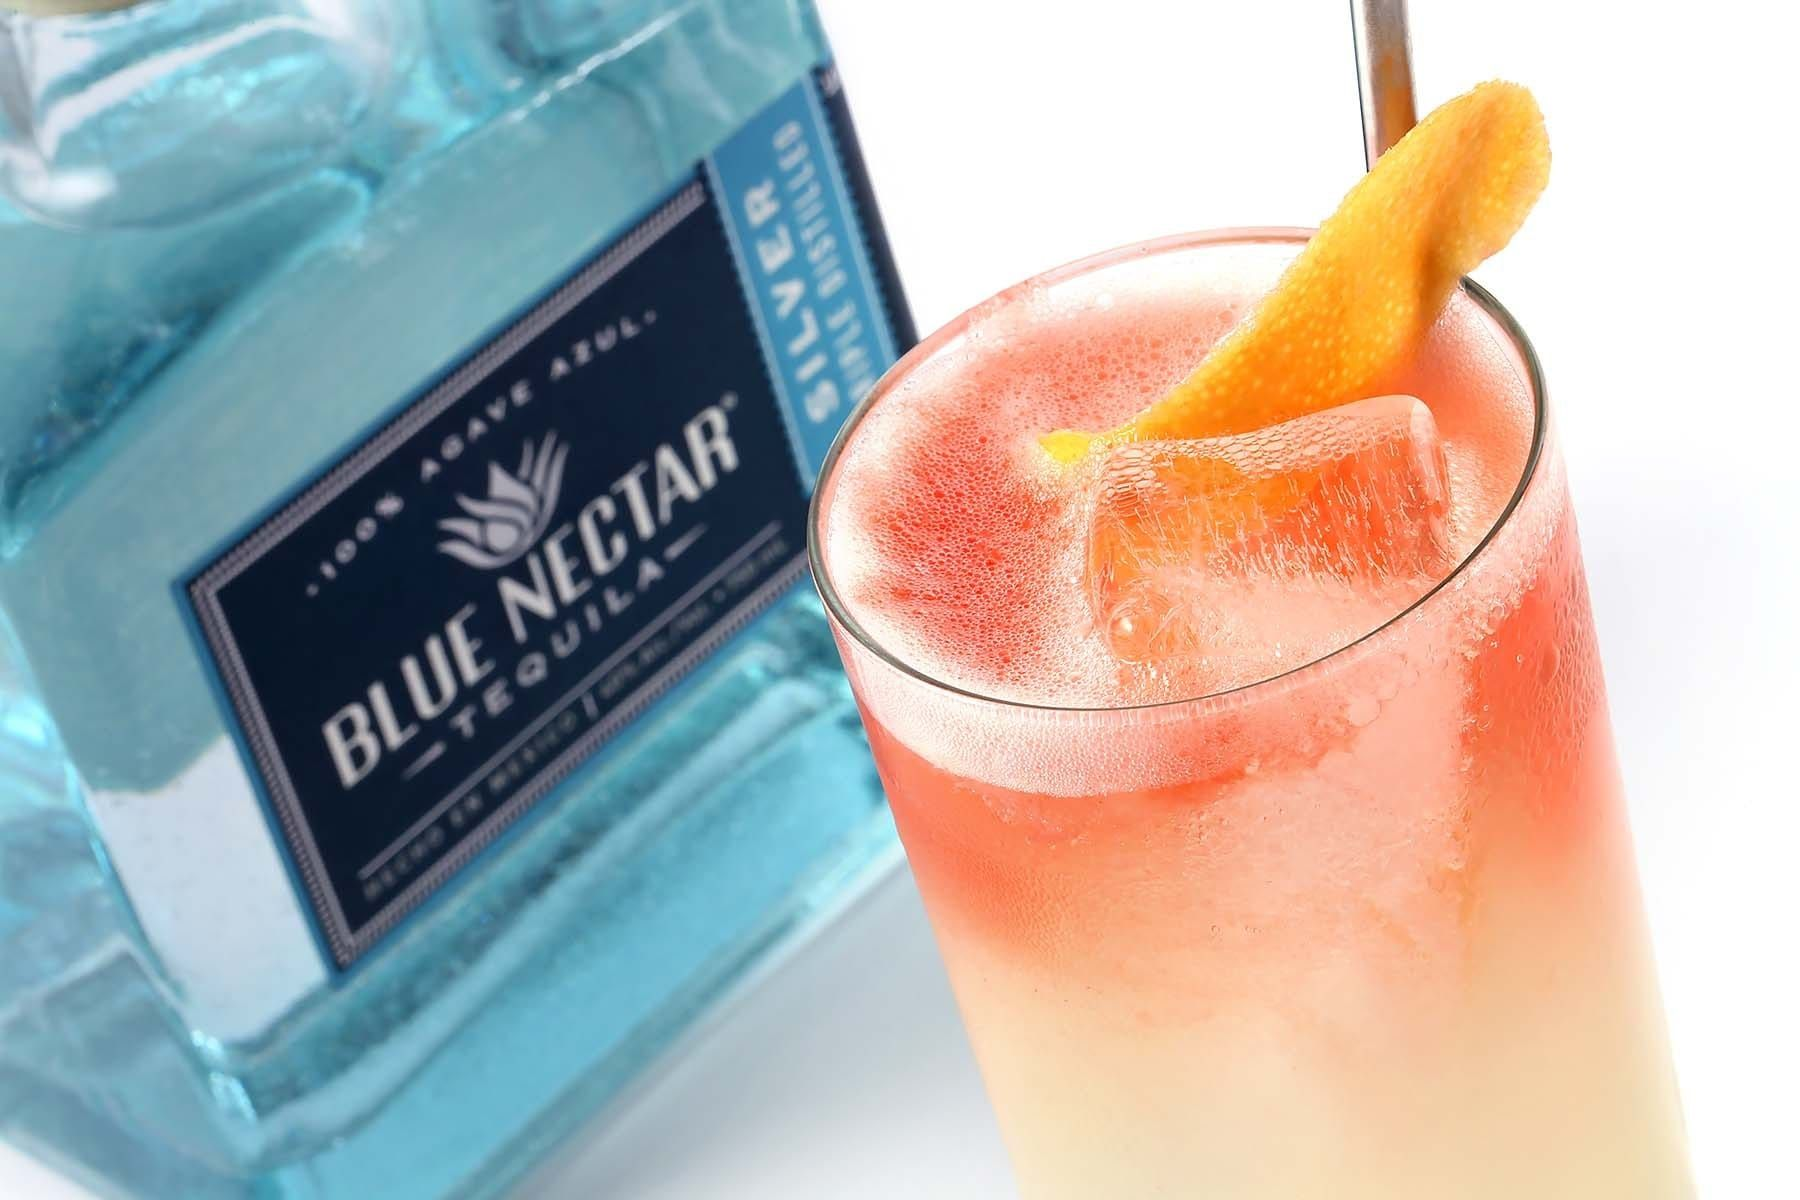 Lou-Manna-Blue-Nectar-Tequila-Paloma-Cocktail